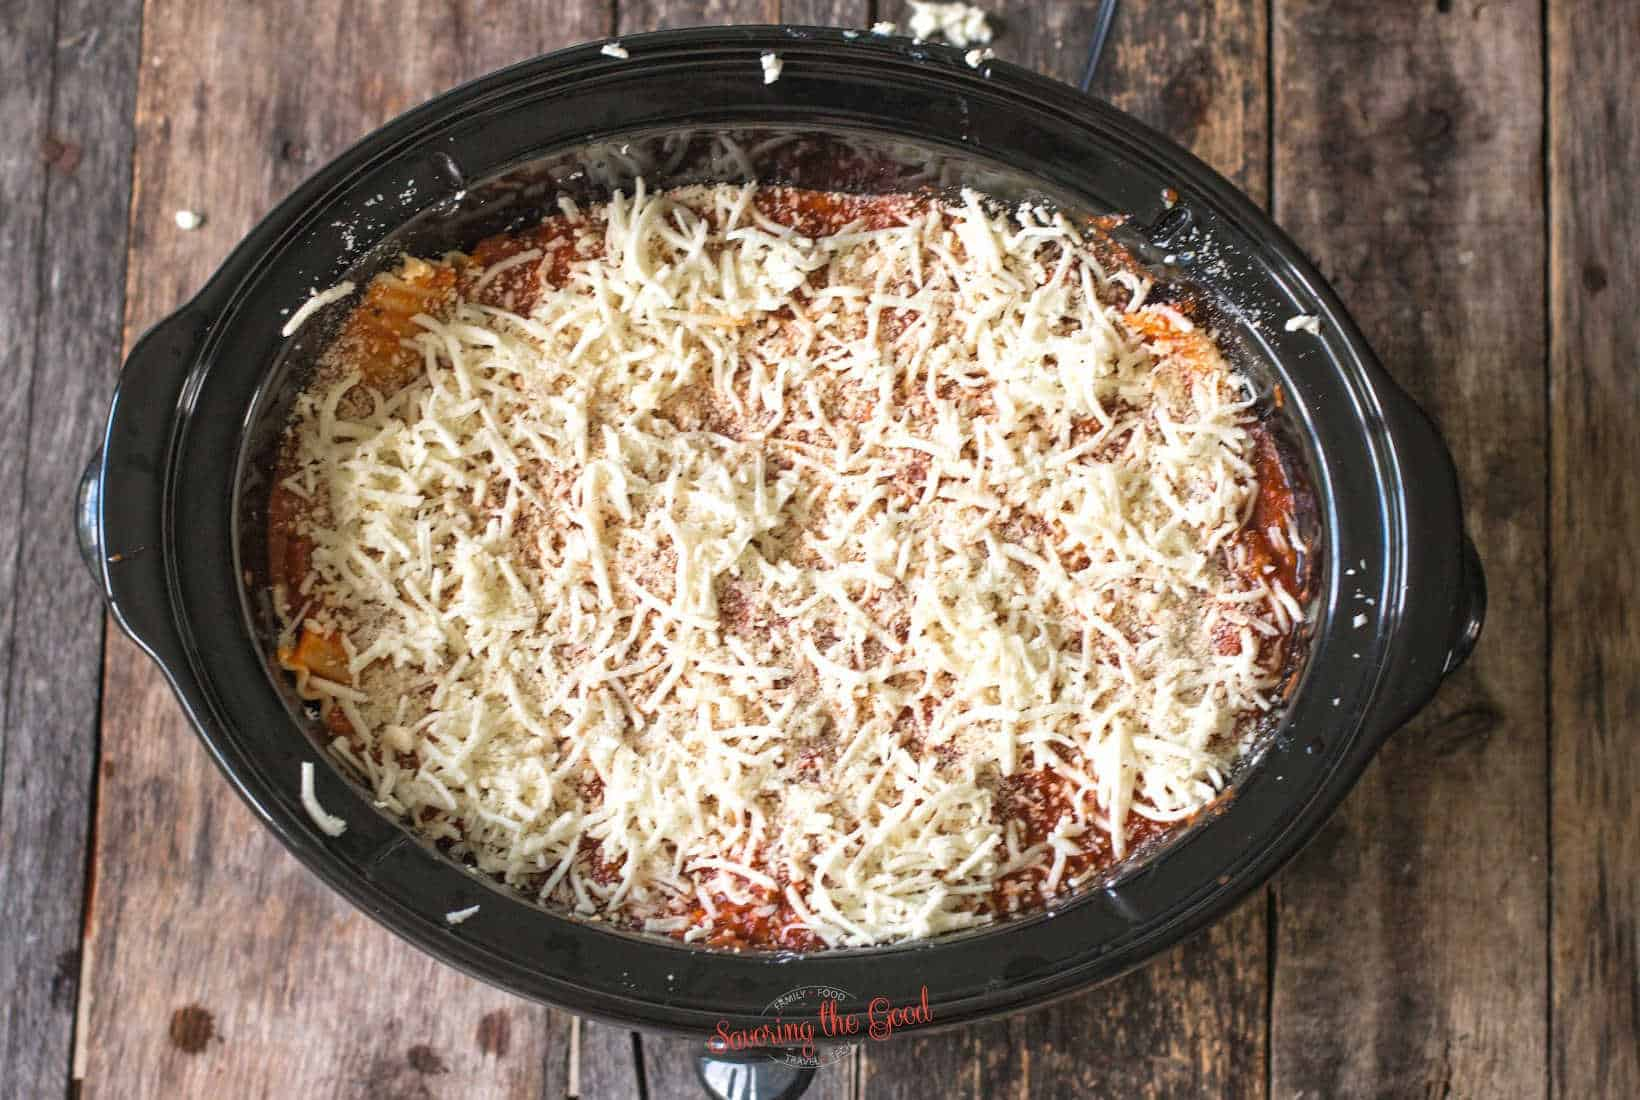 crockpot full of lasagna ready to be cooked, top down image